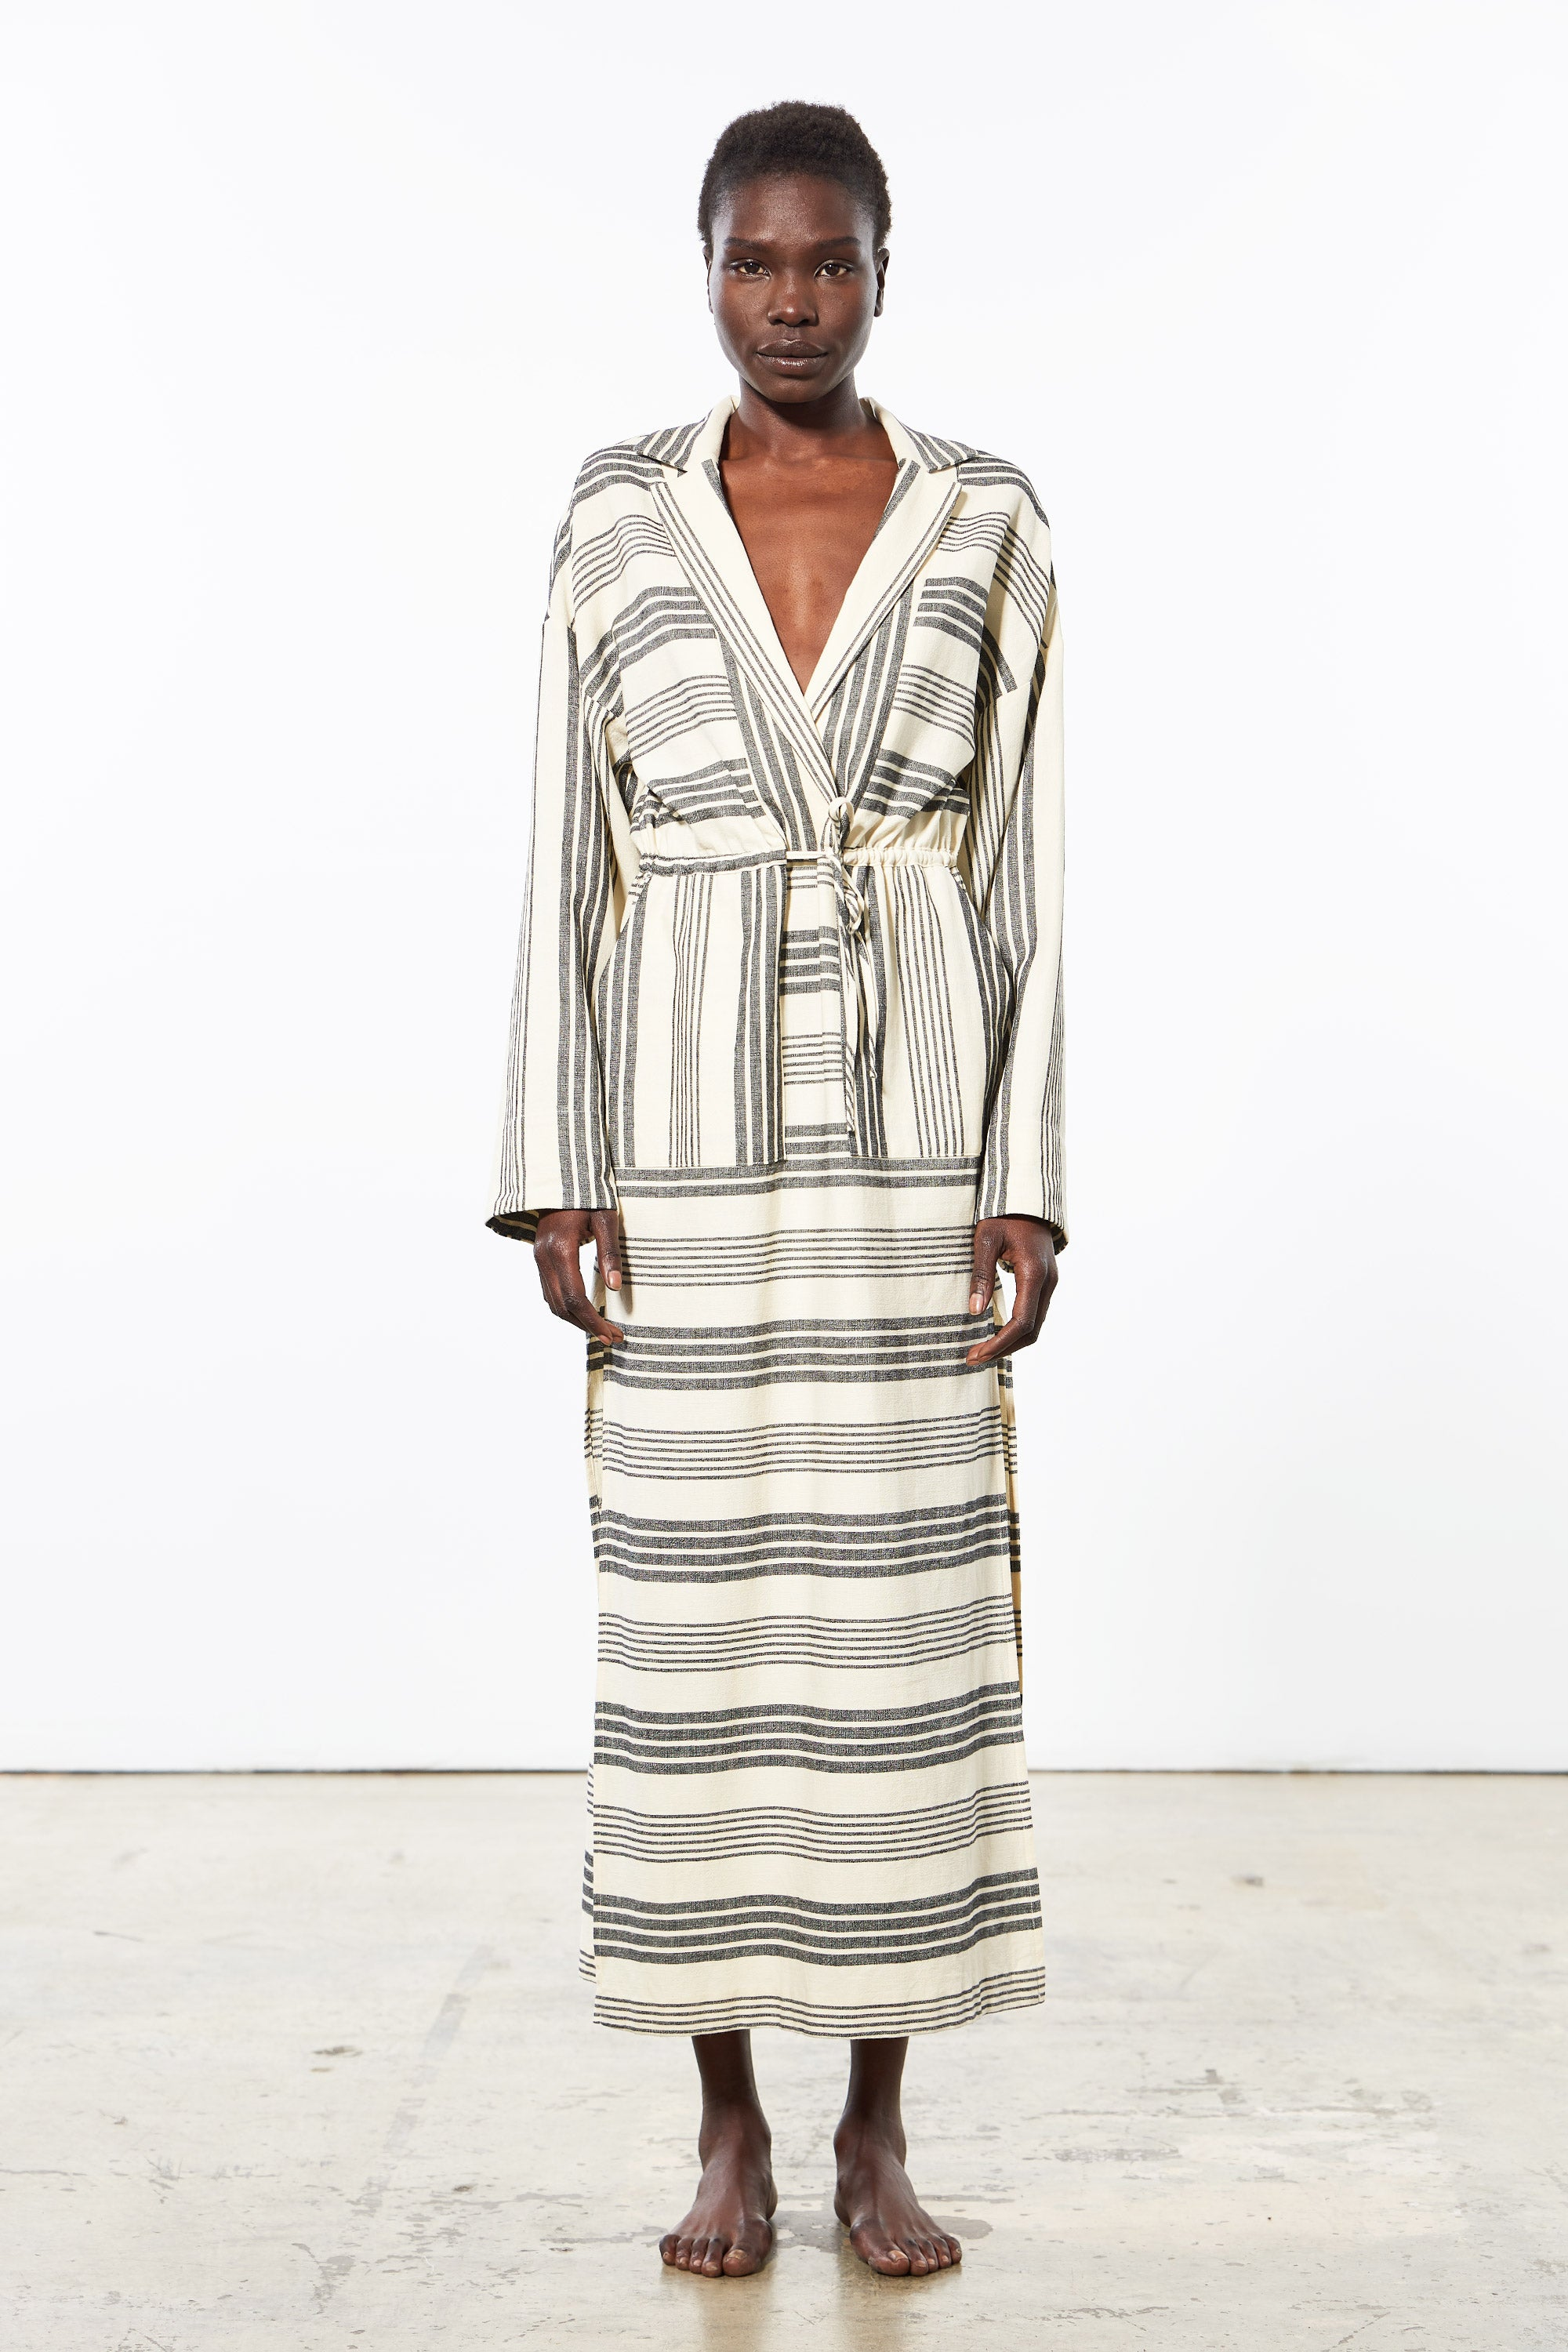 Mara Hoffman Diega Coverup Dress in black striped cotton TENCEL Lyocell blend (front)